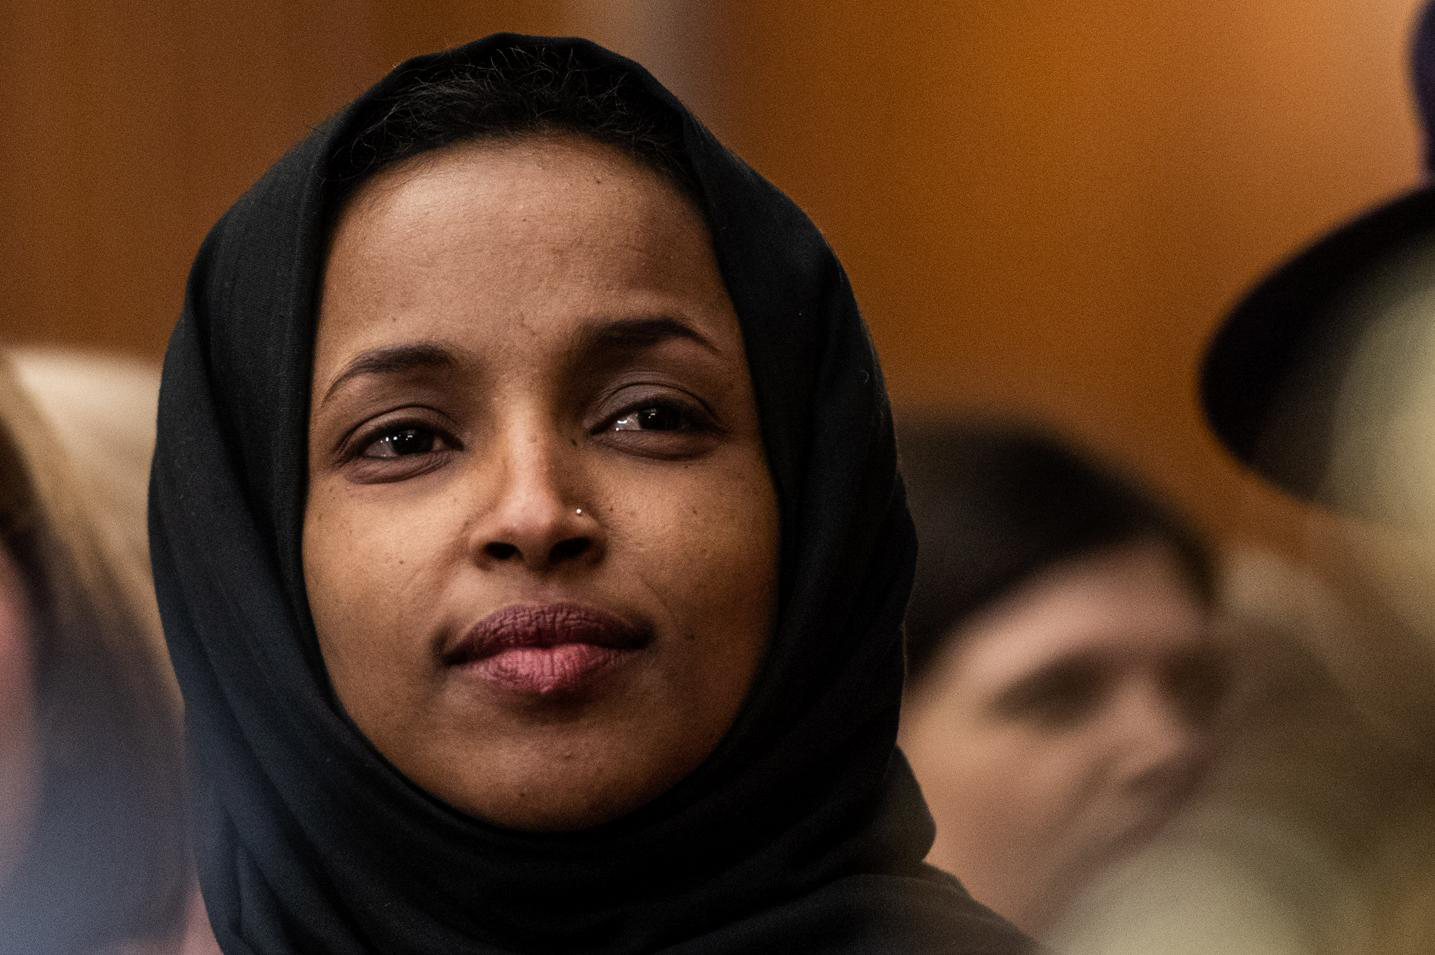 Rep. Ilhan Omar, D-Minn., is seen during an even on Capitol Hill in January. Washington Post photo by Salwan Georges.